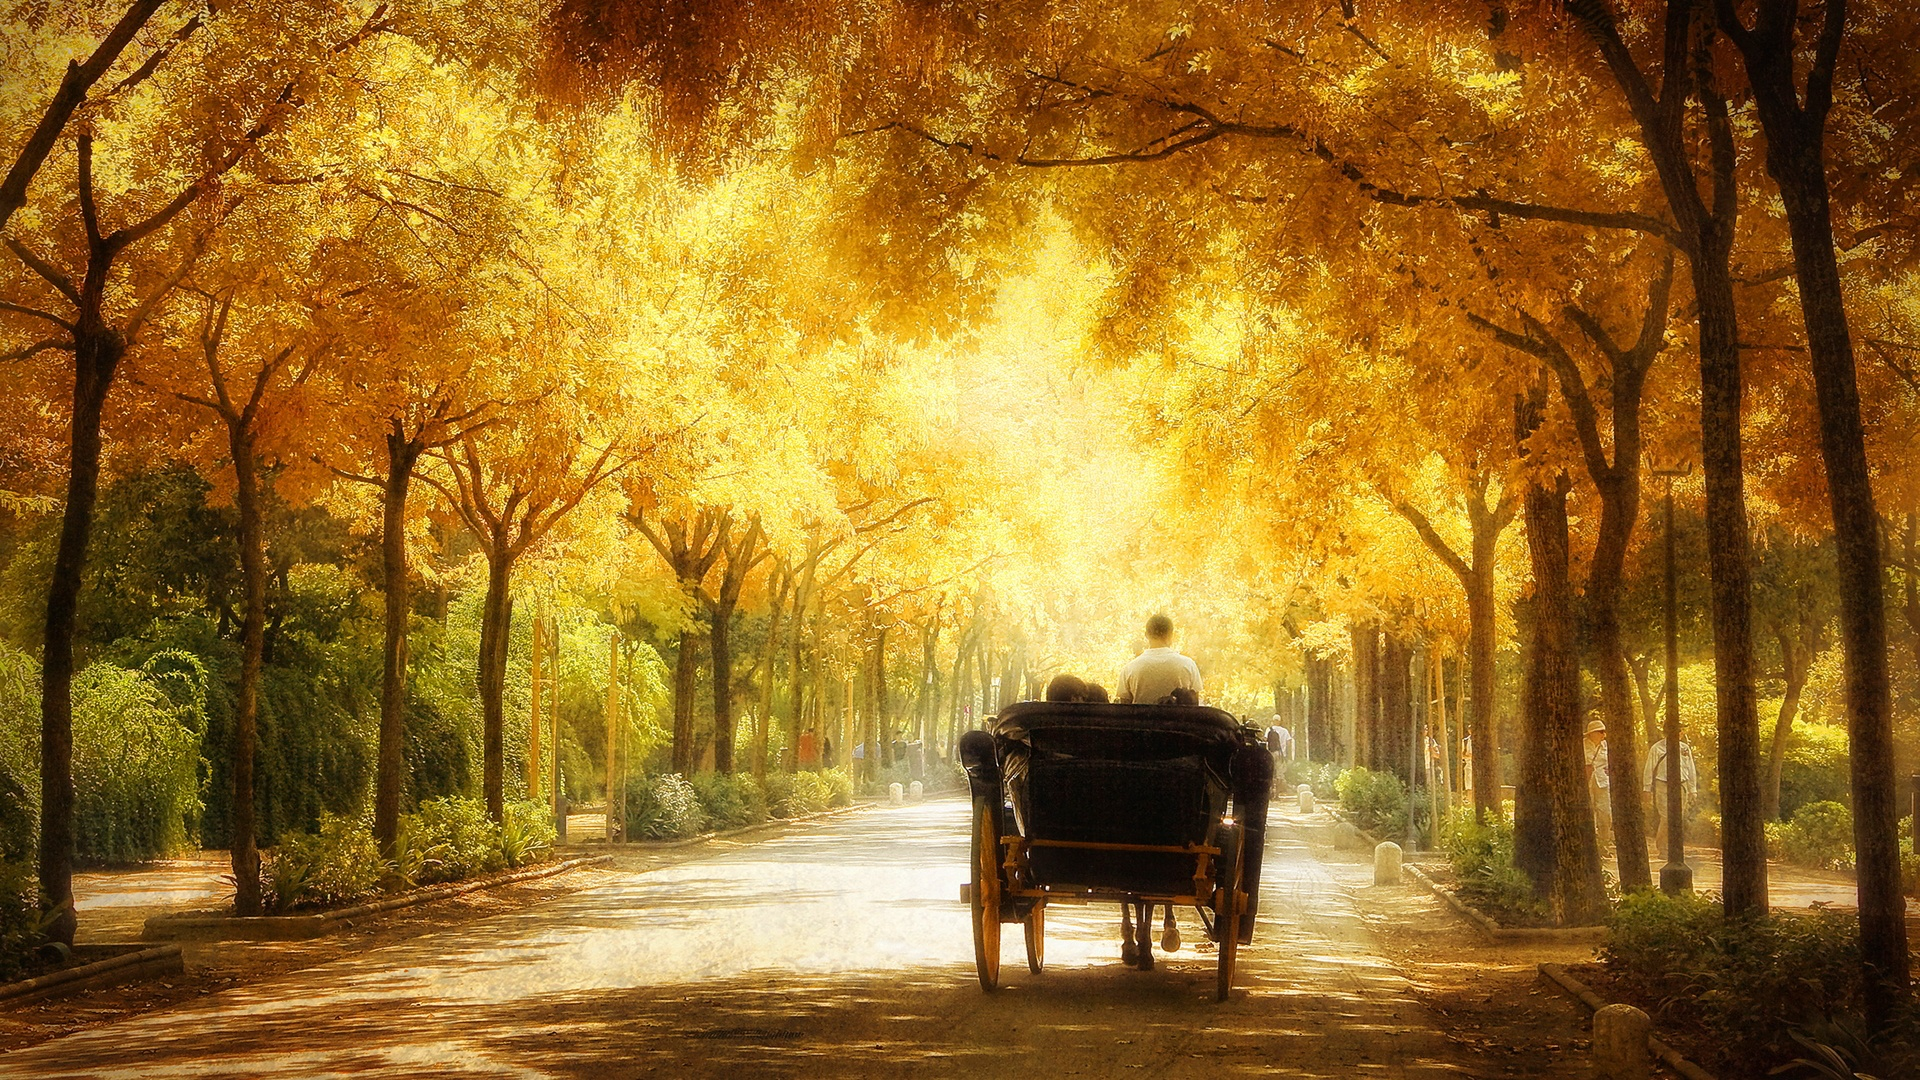 http://www.alcovadeldoge.com/wp-content/uploads/2016/04/romantic-carriage-ride-1920x1080.jpg